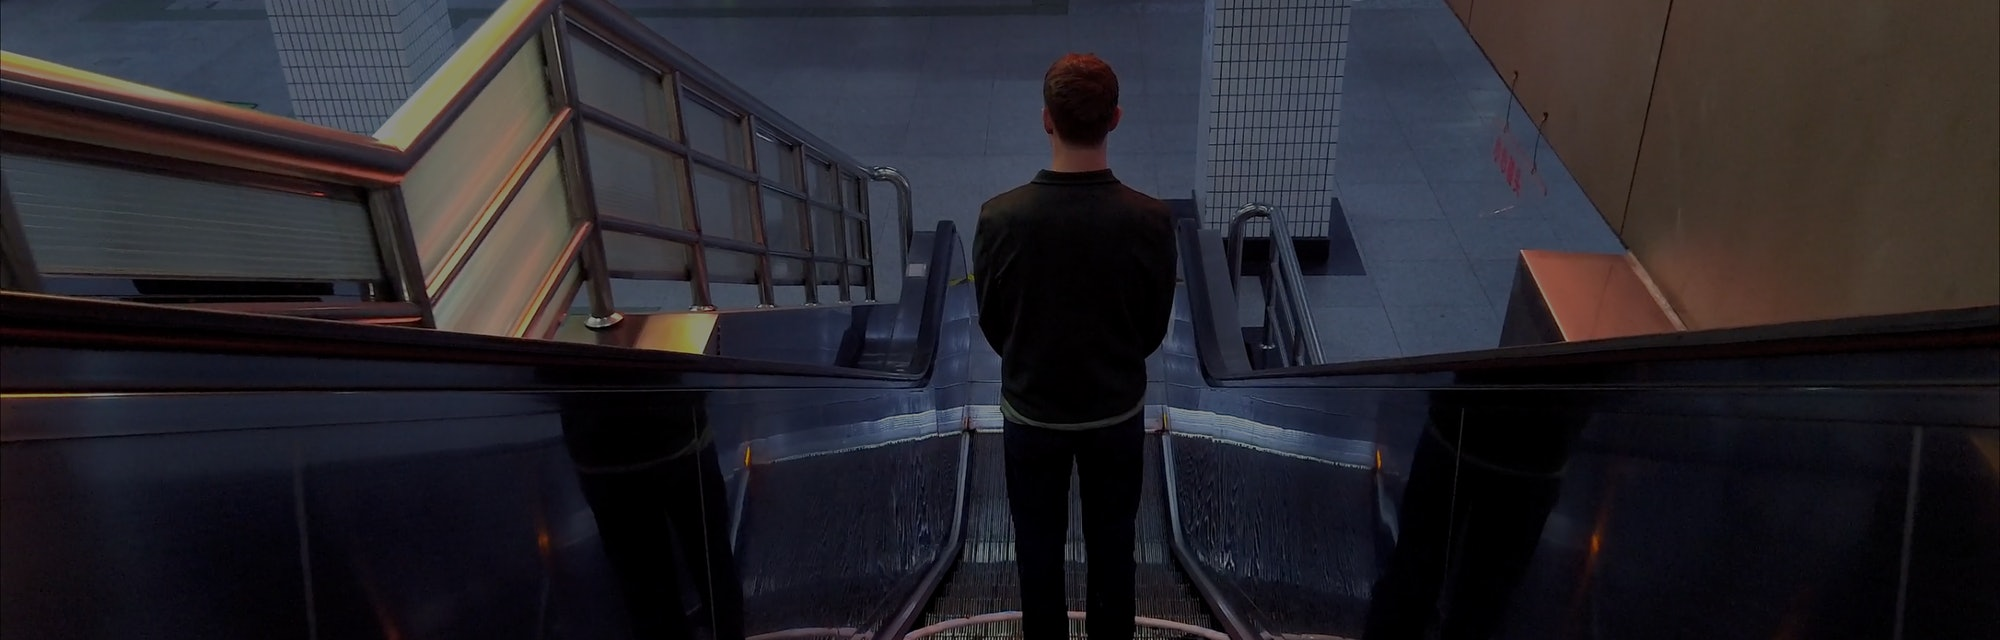 The artist is seen standing on an escalator heading downward. His hands are held in front of him. He has a circle hoop around his feet.